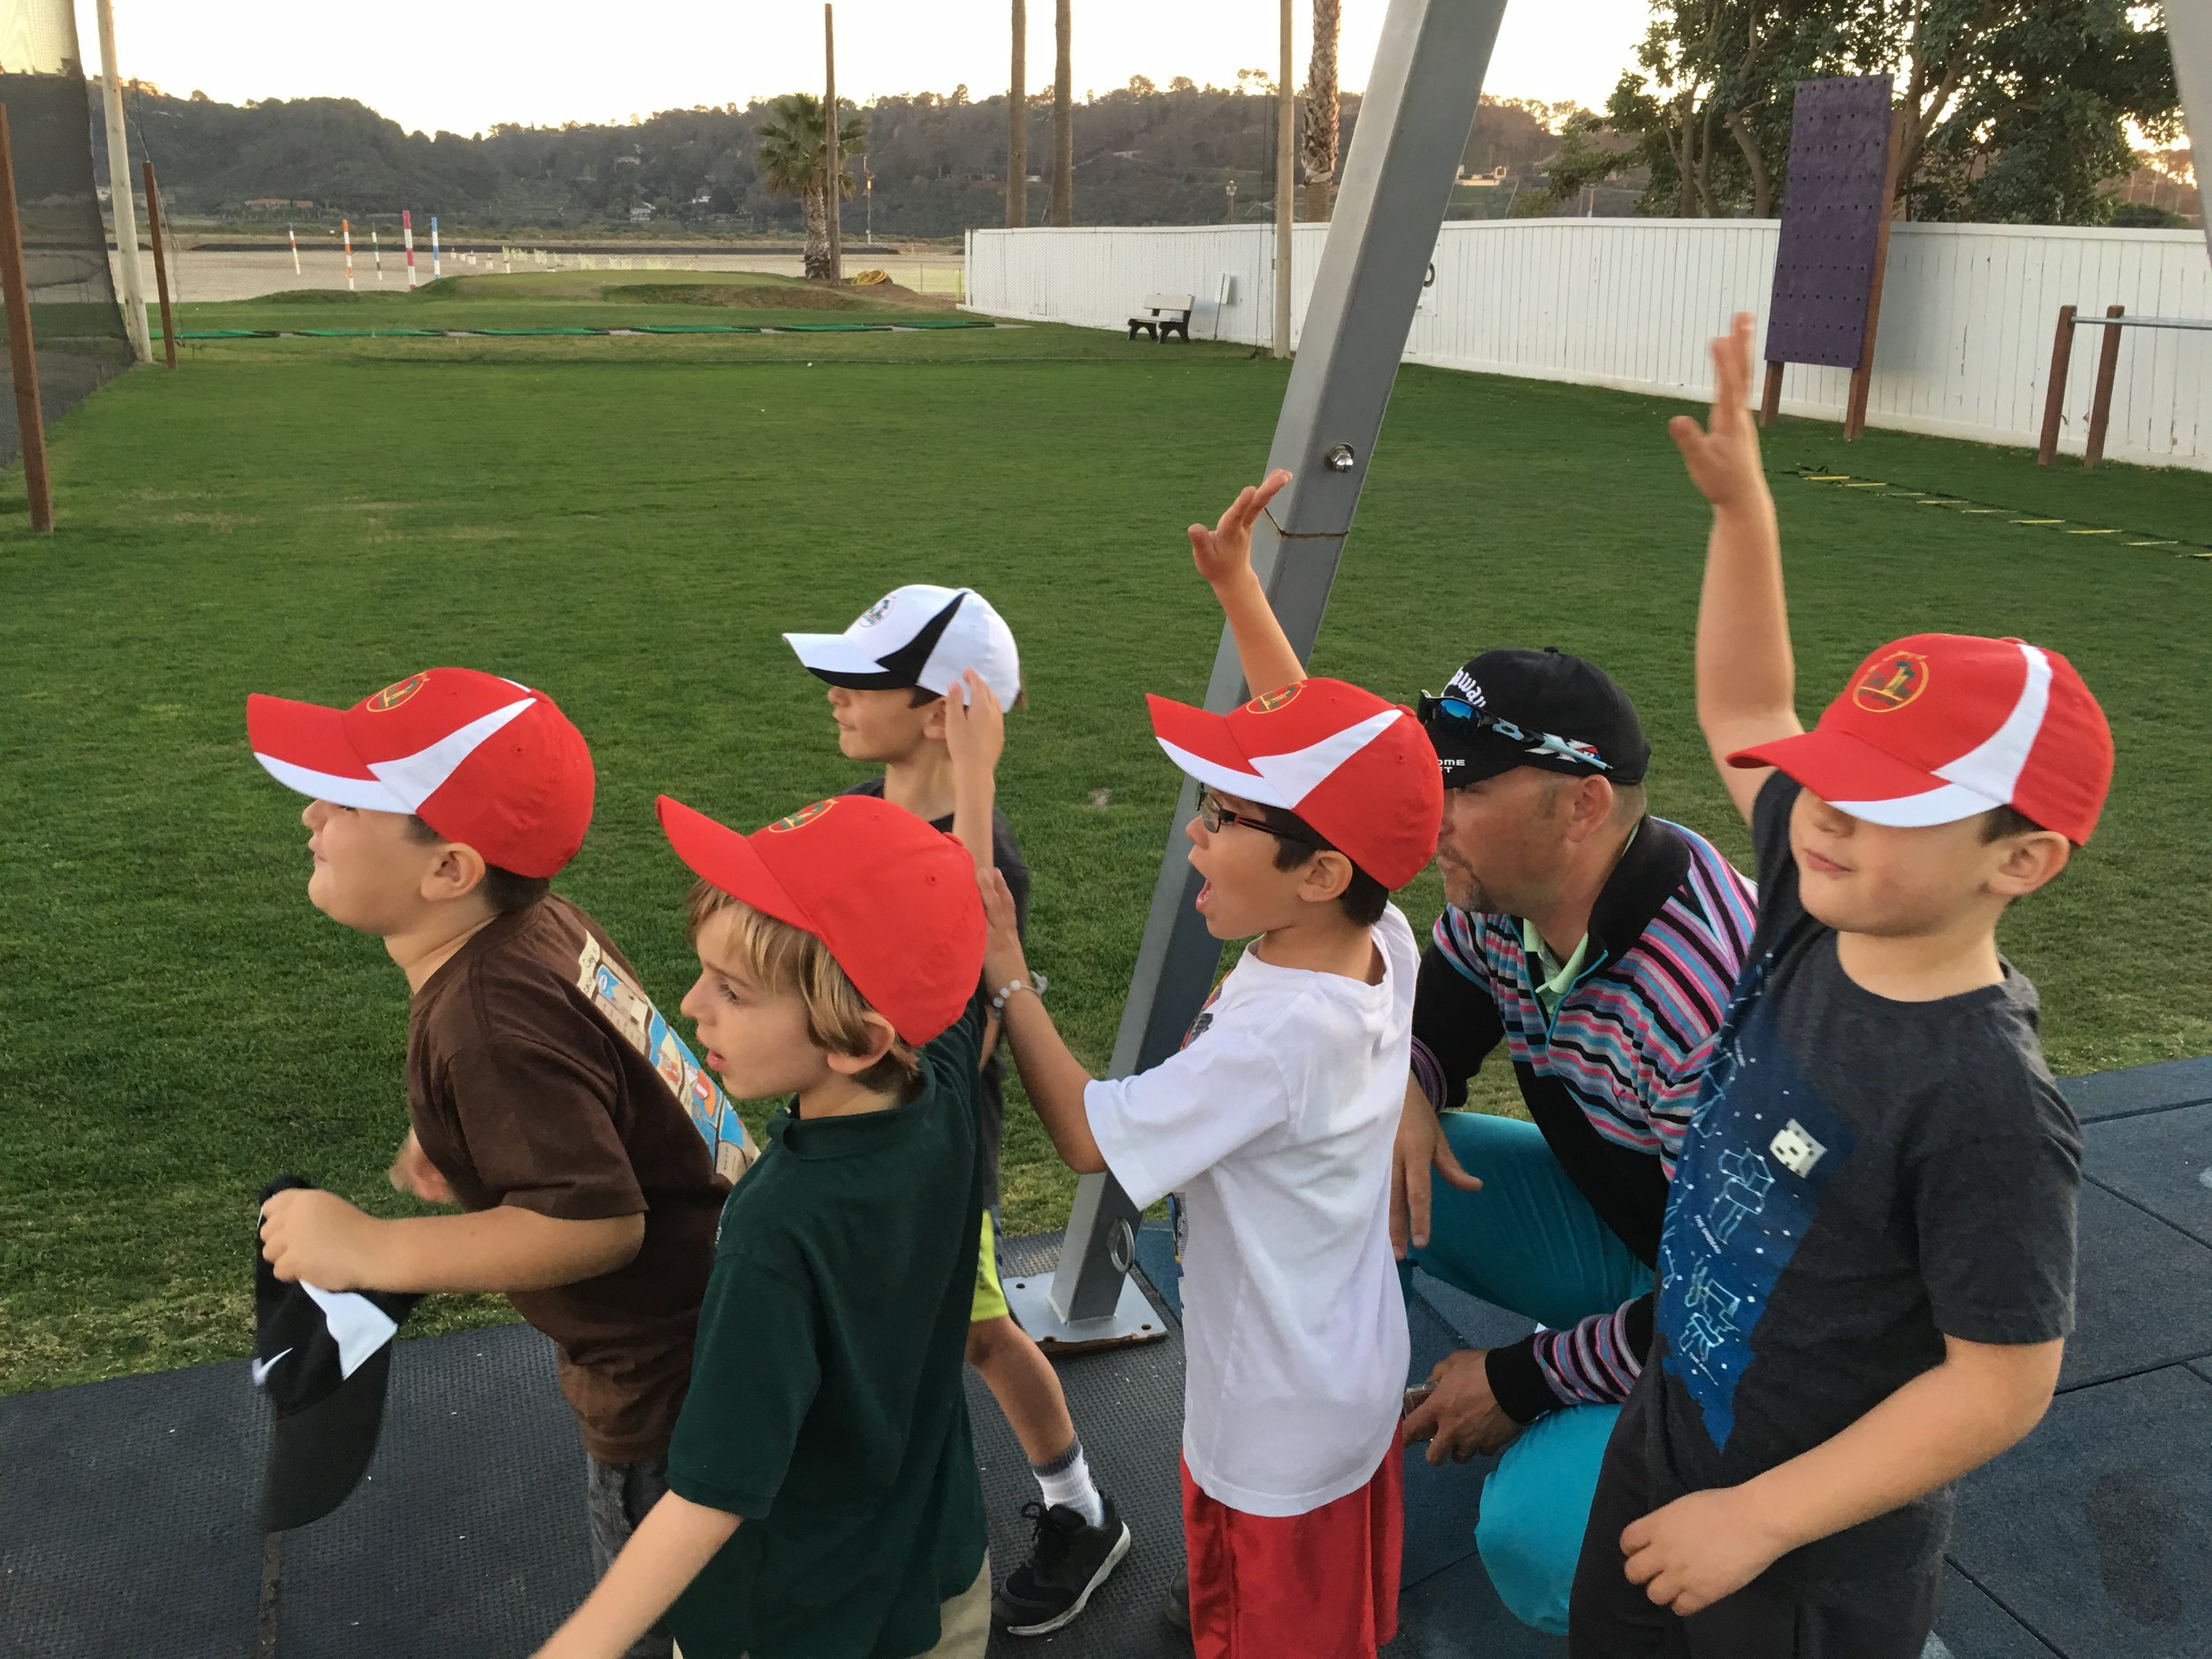 Young athletes proudly sporting the hats they earned for their golf prowess.